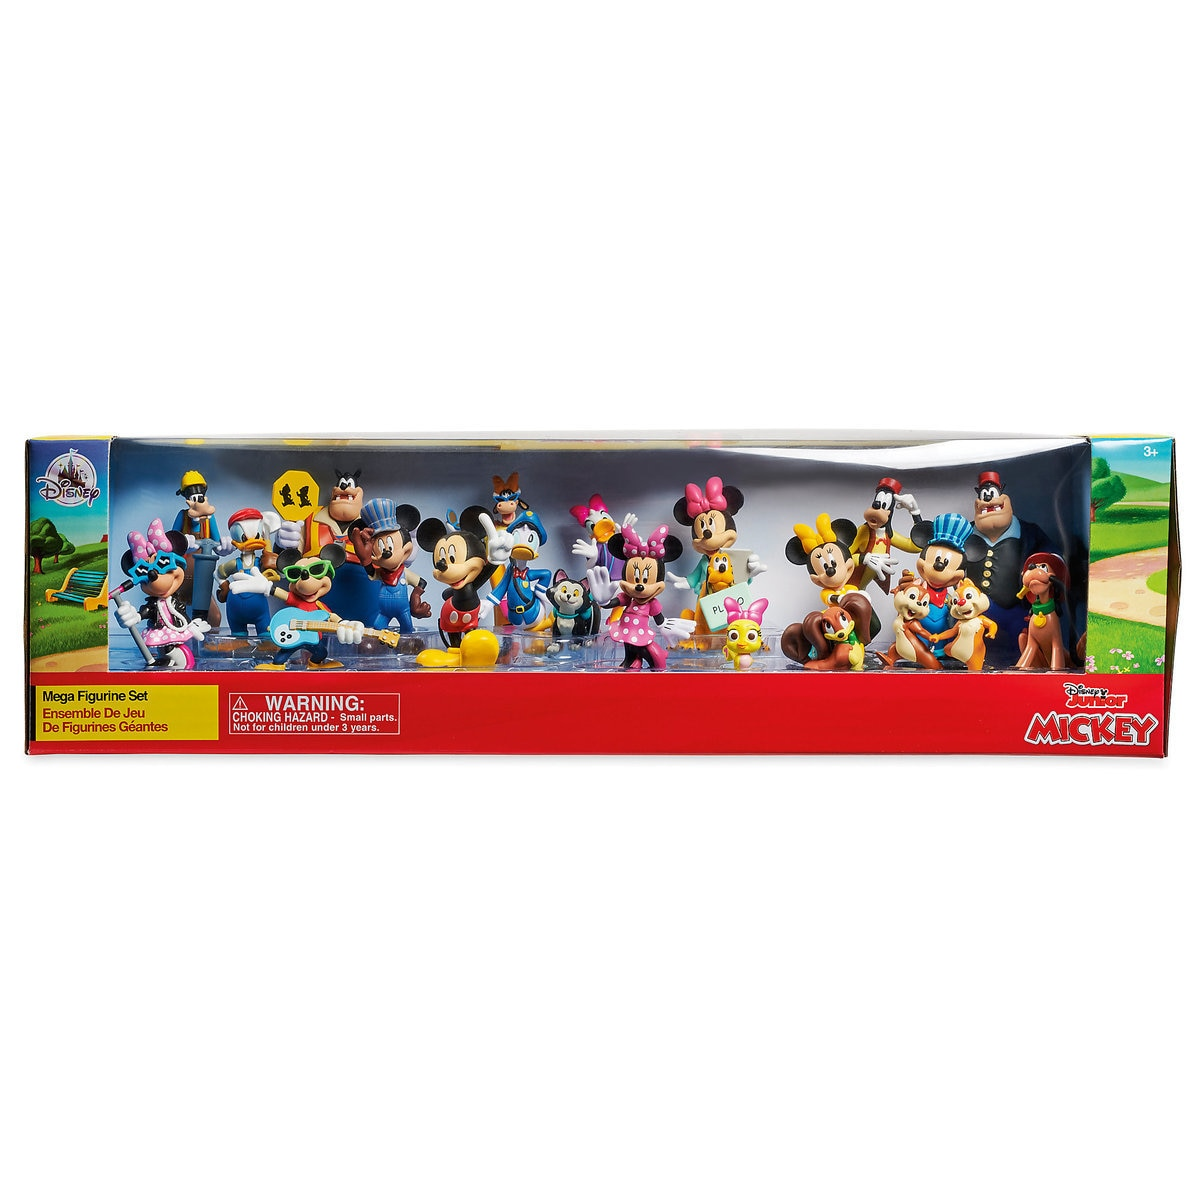 718be9f7dc1 Product Image of Mickey Mouse and Friends Mega Figurine Set   2